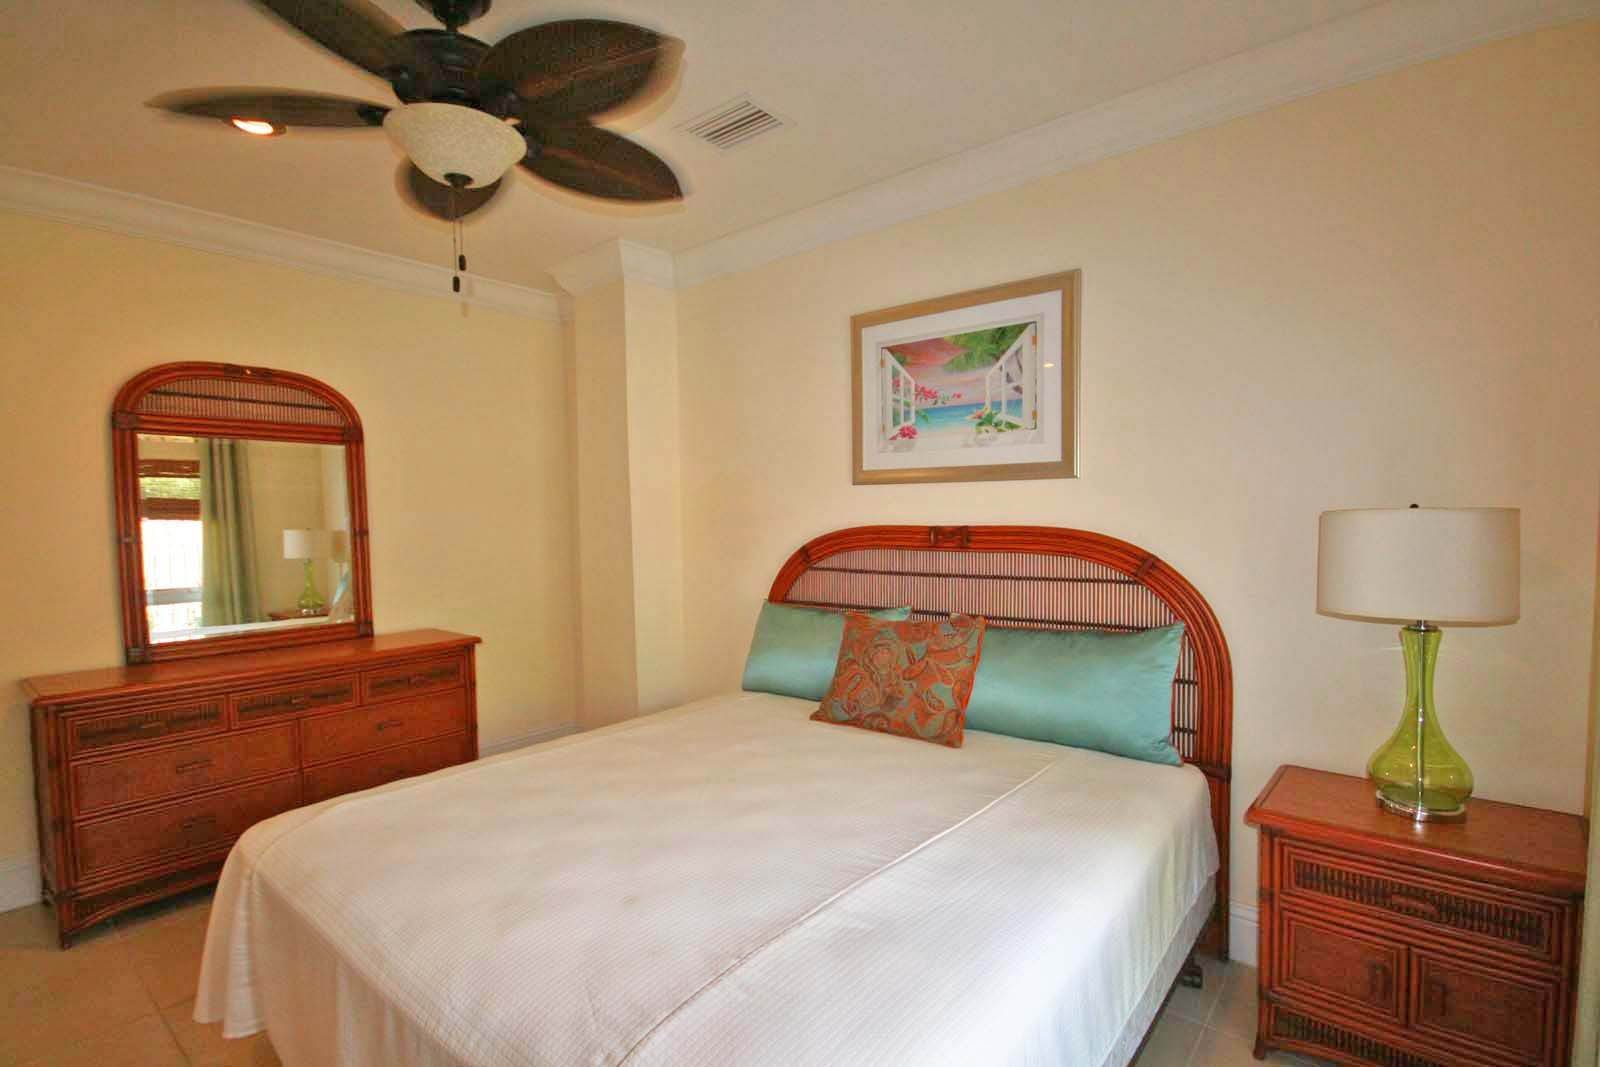 10. Co-op / Condo for Rent at Luxurious Waterfront 1-Bedroom Condominium in Gorgeous Suffolk Court Bahamia Marina, Freeport And Grand Bahama, Bahamas